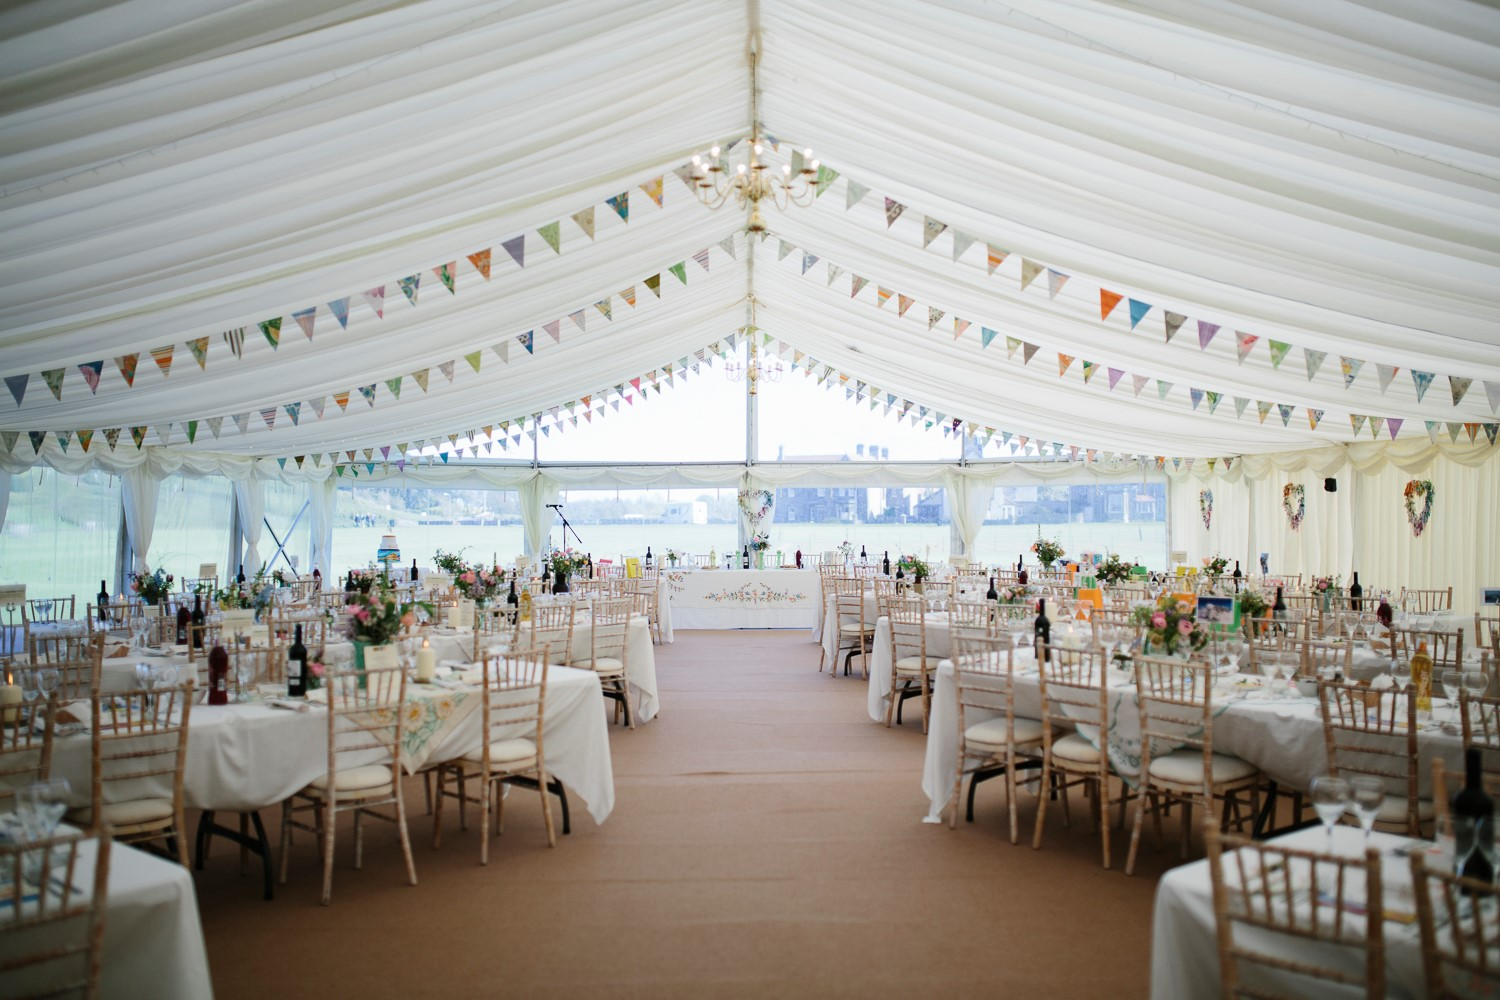 Sophie And Bens Wedding Day Marquee Hire In The North East